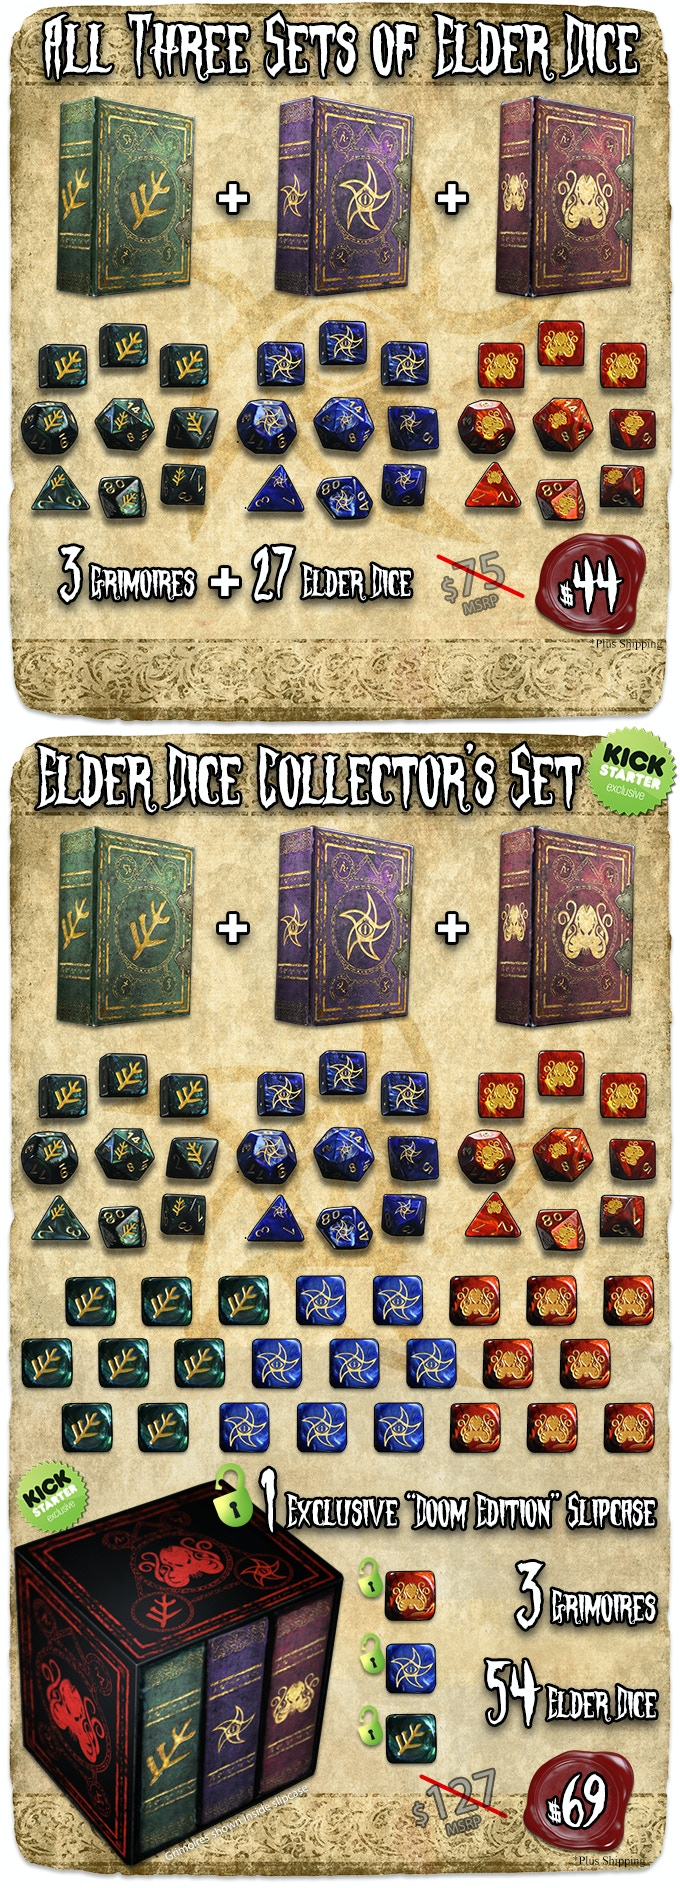 Elder Dice - prototypes and visualizations